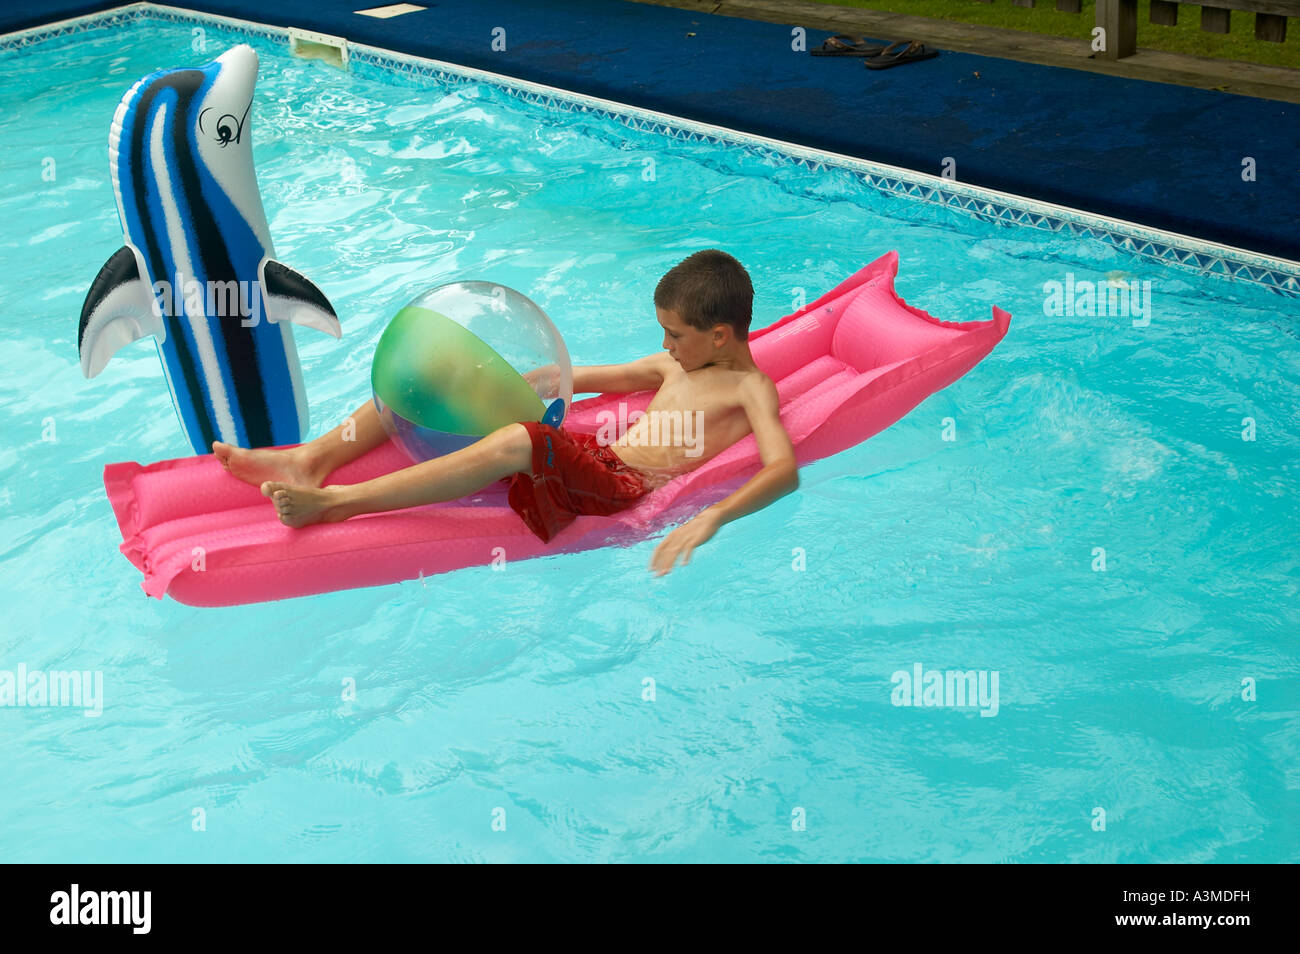 1 One Young 8 9 Eight Nine Year Old Boy Enjoys Swimming Pool Inflatable  Dolphin Toy